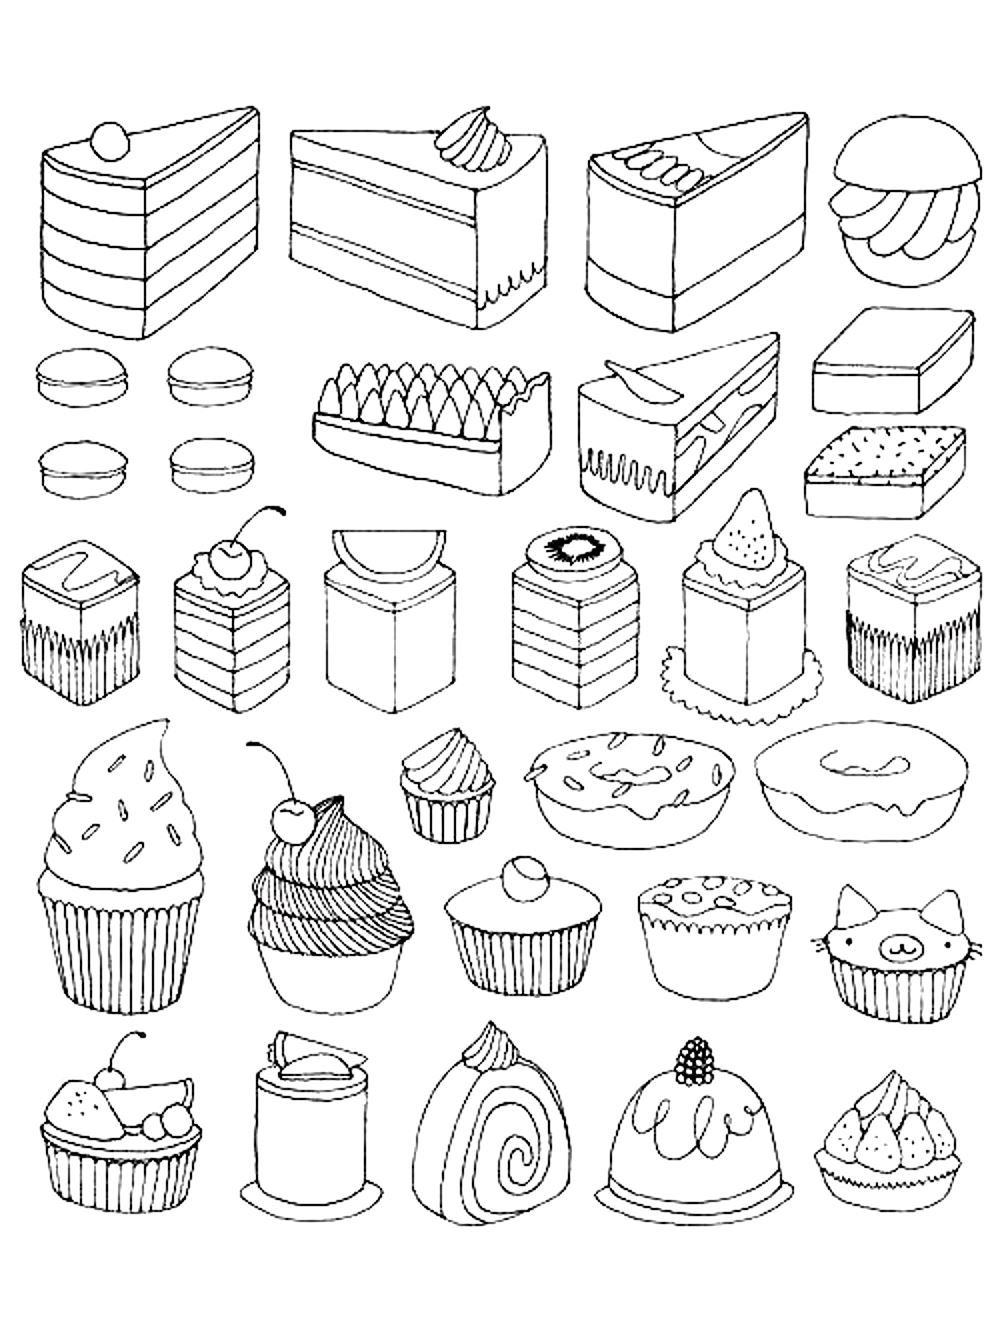 Baking Coloring Pages : baking, coloring, pages, Bakery, Coloring, Pages